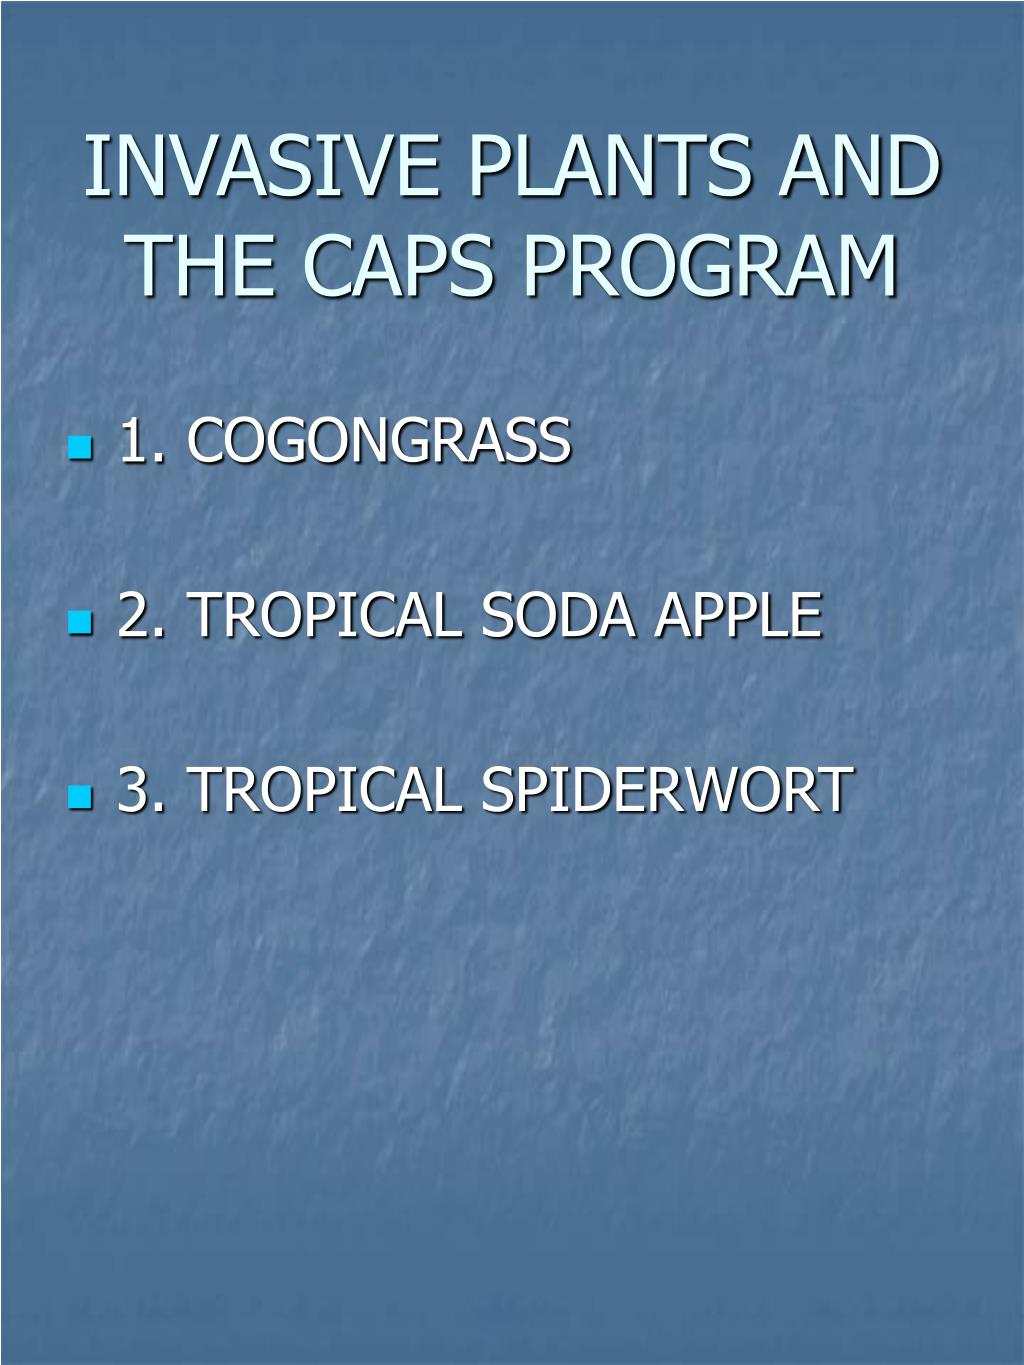 INVASIVE PLANTS AND THE CAPS PROGRAM